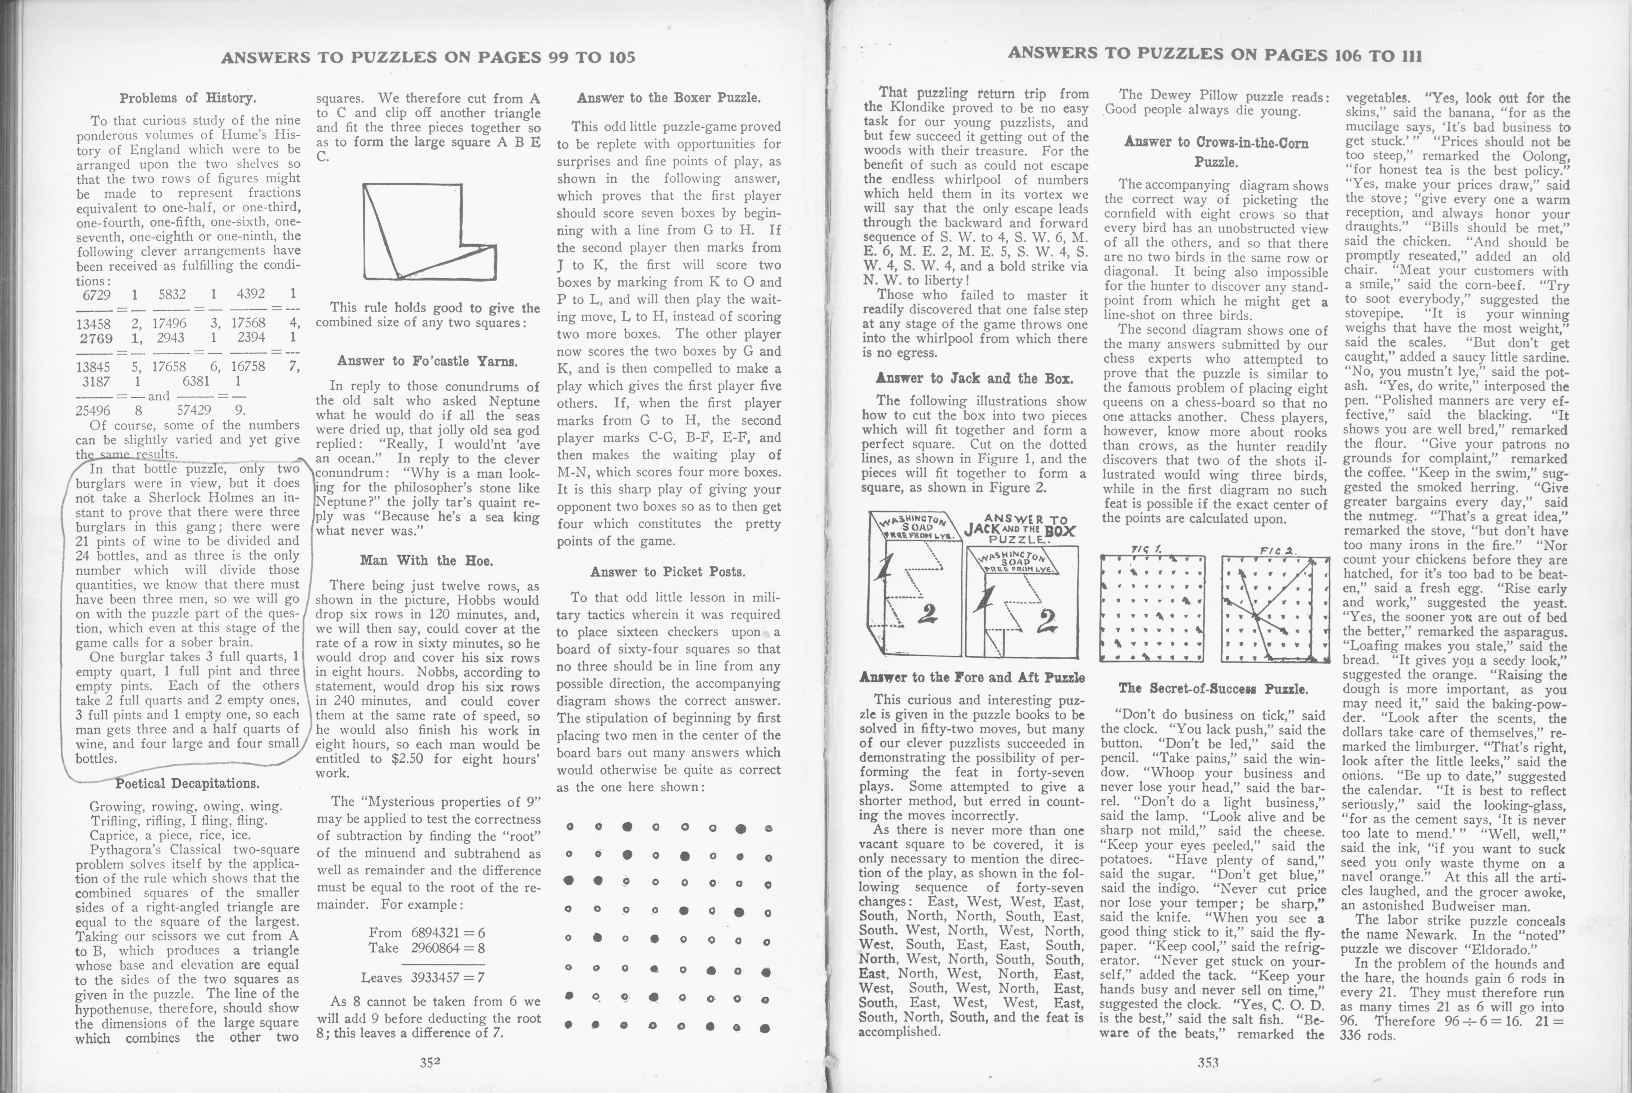 Sam Loyd - Cyclopedia of Puzzles - page 352-353